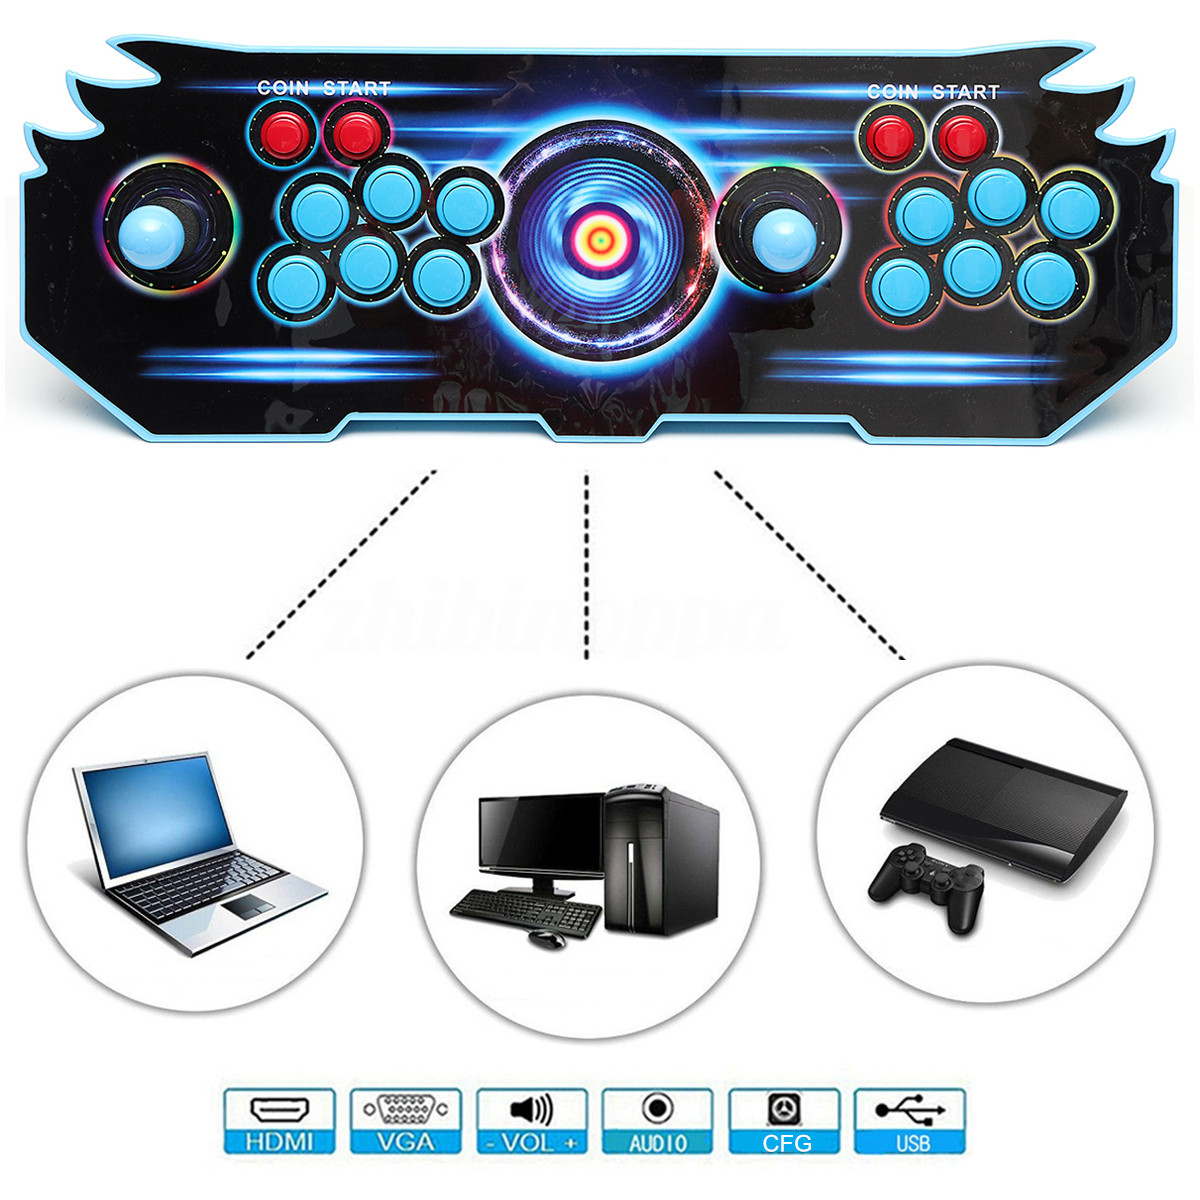 US $125 48 41% OFF|Newest High Definition Classic Video Game Consoles For  Pandora's Box 5S With 1388 Classical Games For Home Party/KTV/Bar-in Video